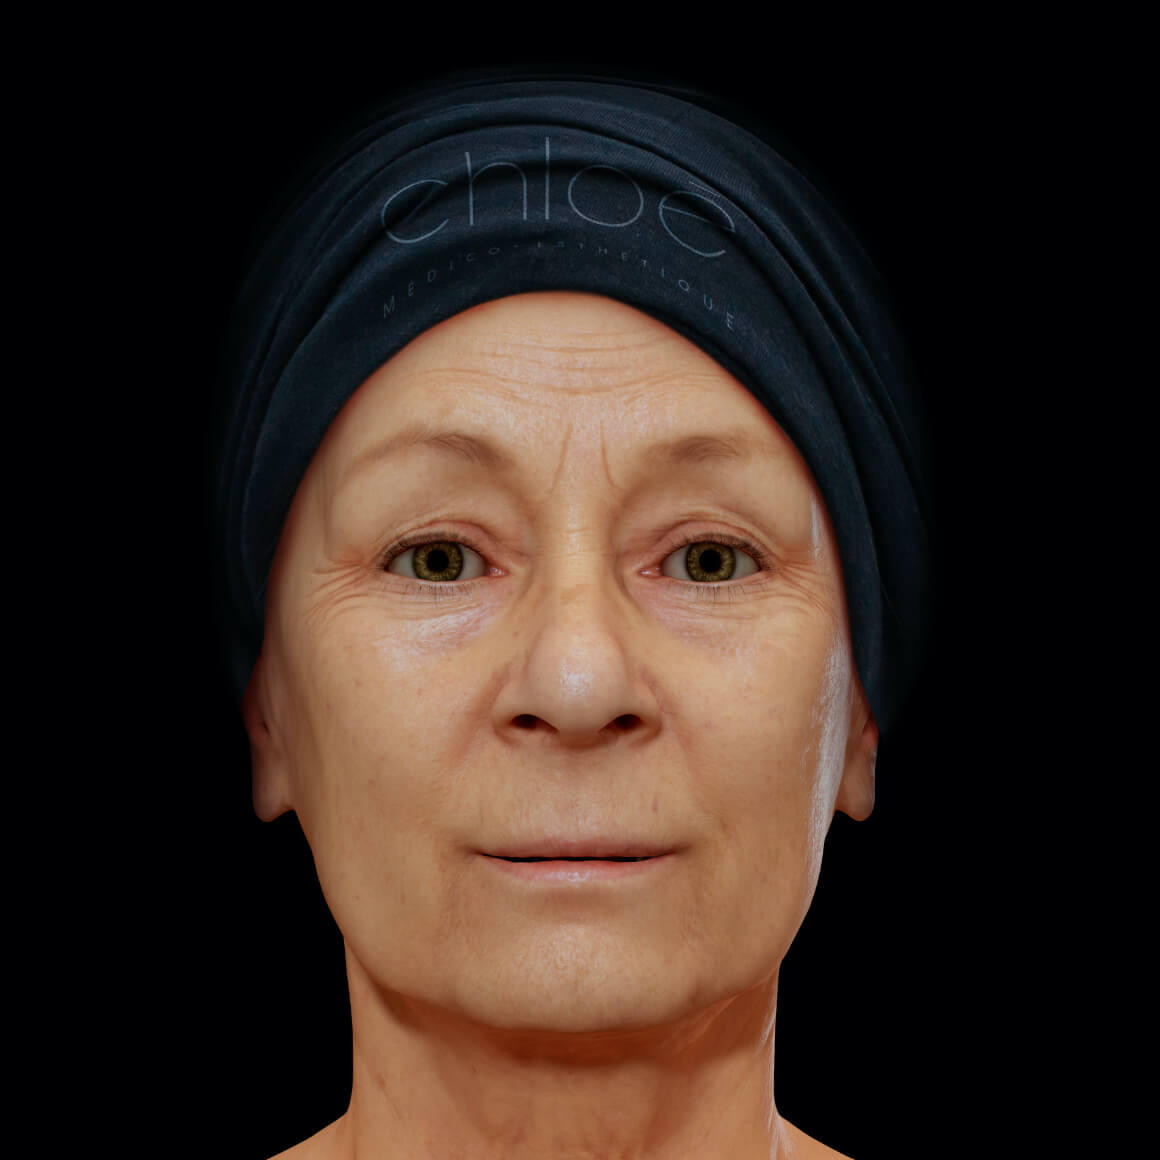 Woman, patient at Clinique Chloé, facing front, showing fine lines and wrinkles on the face